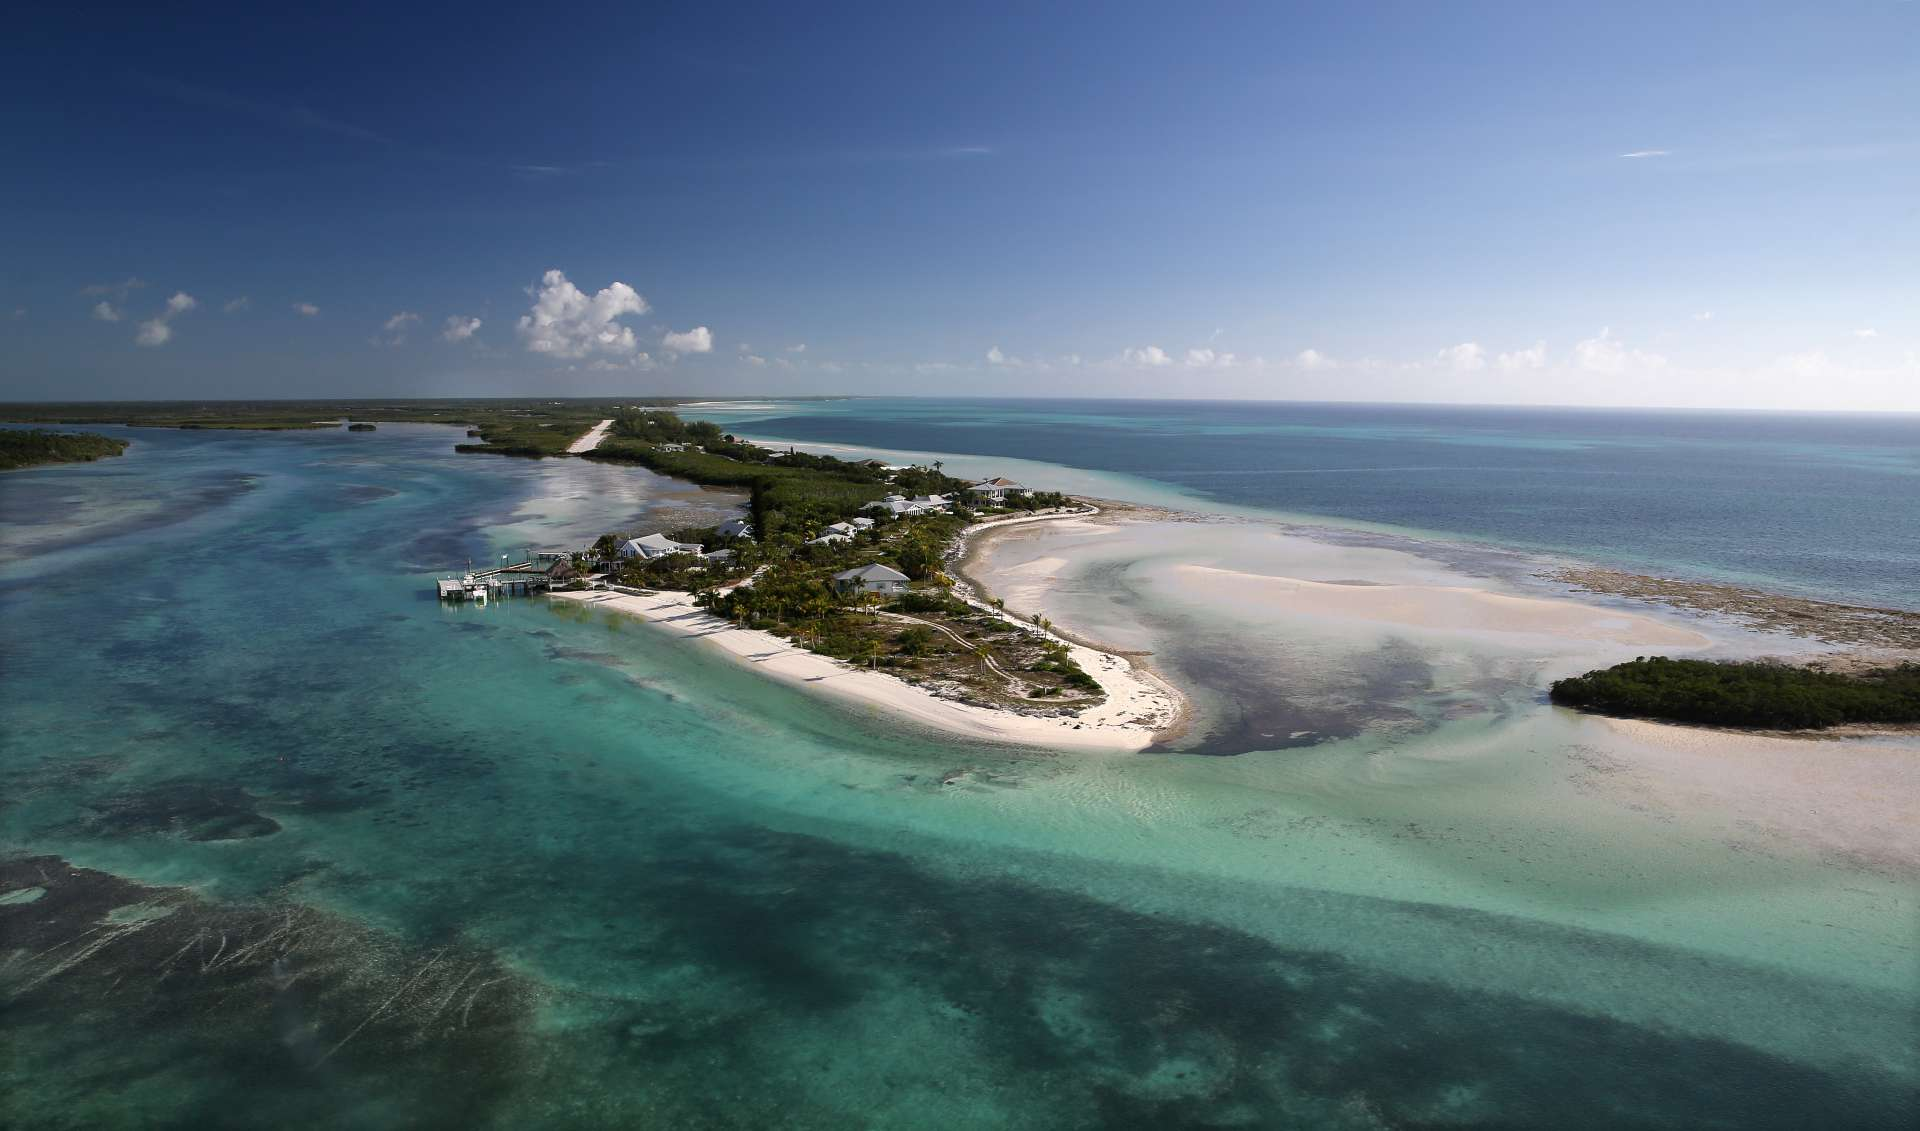 Private Islands Inc Islands For Sale And Rent - 10 private islands you can own today